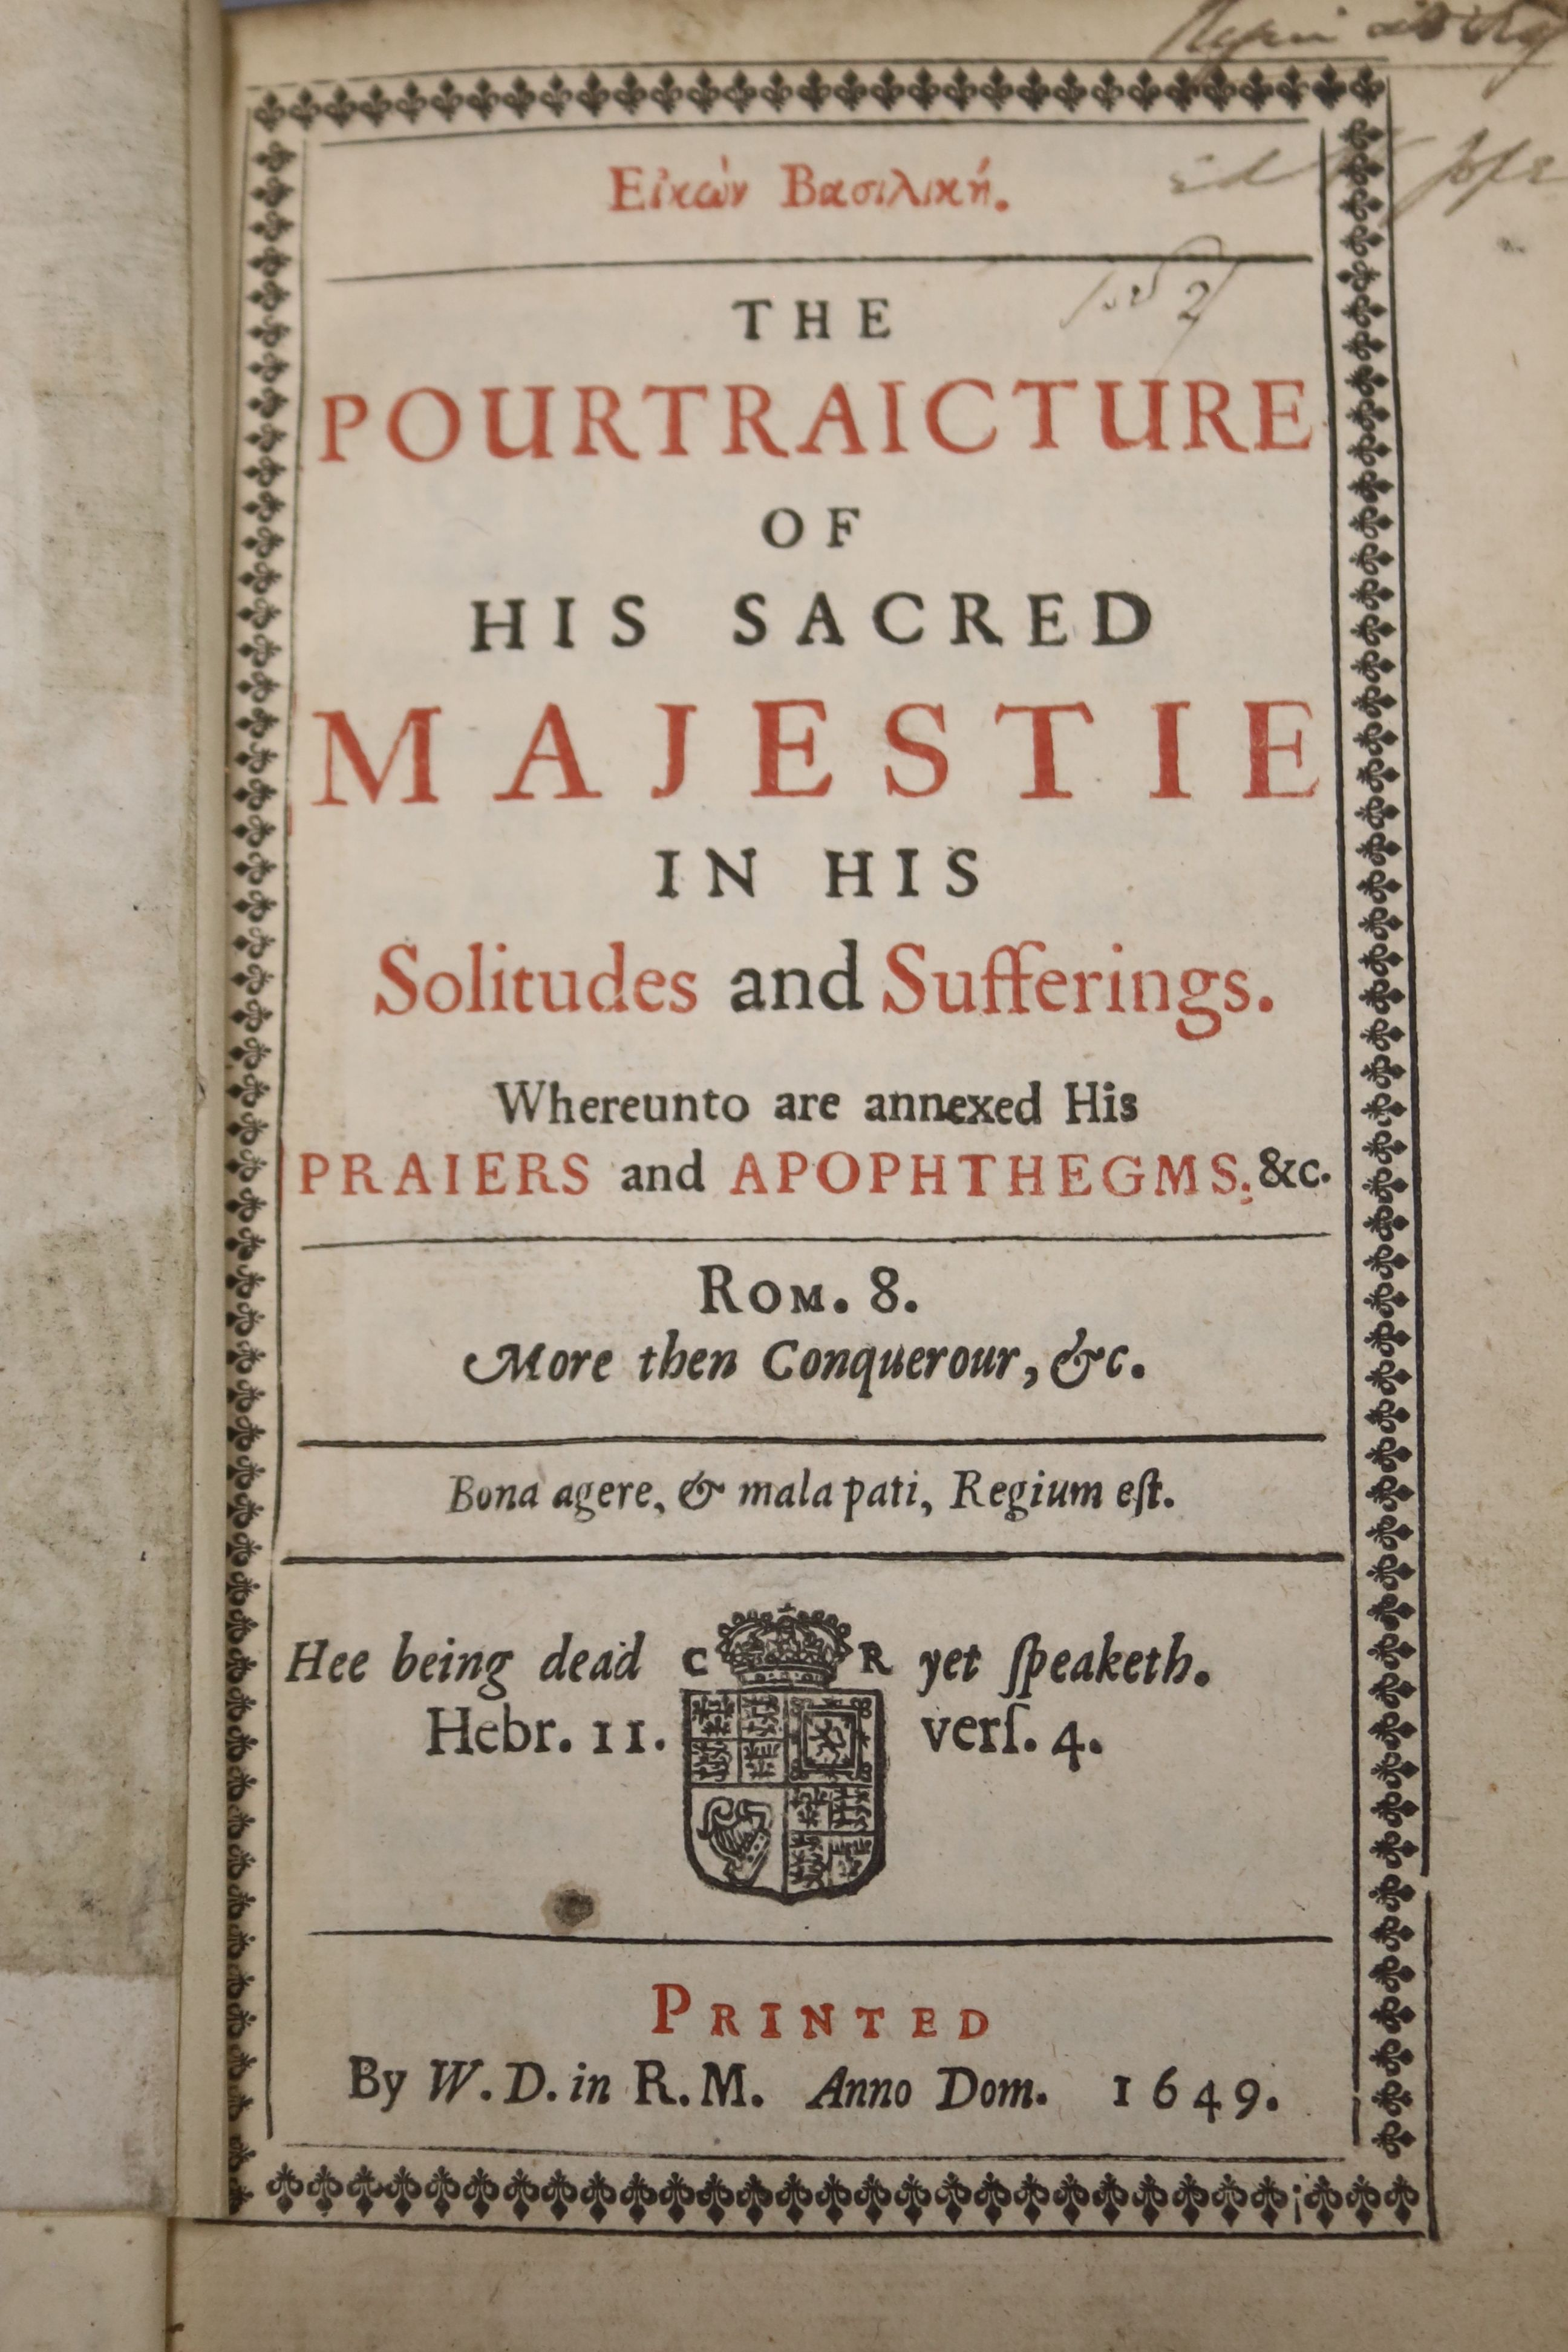 Eikon Basilike – The Pourtraicature of His Sacred Majestie in His Solitudes and Sufferings …, - Image 2 of 4